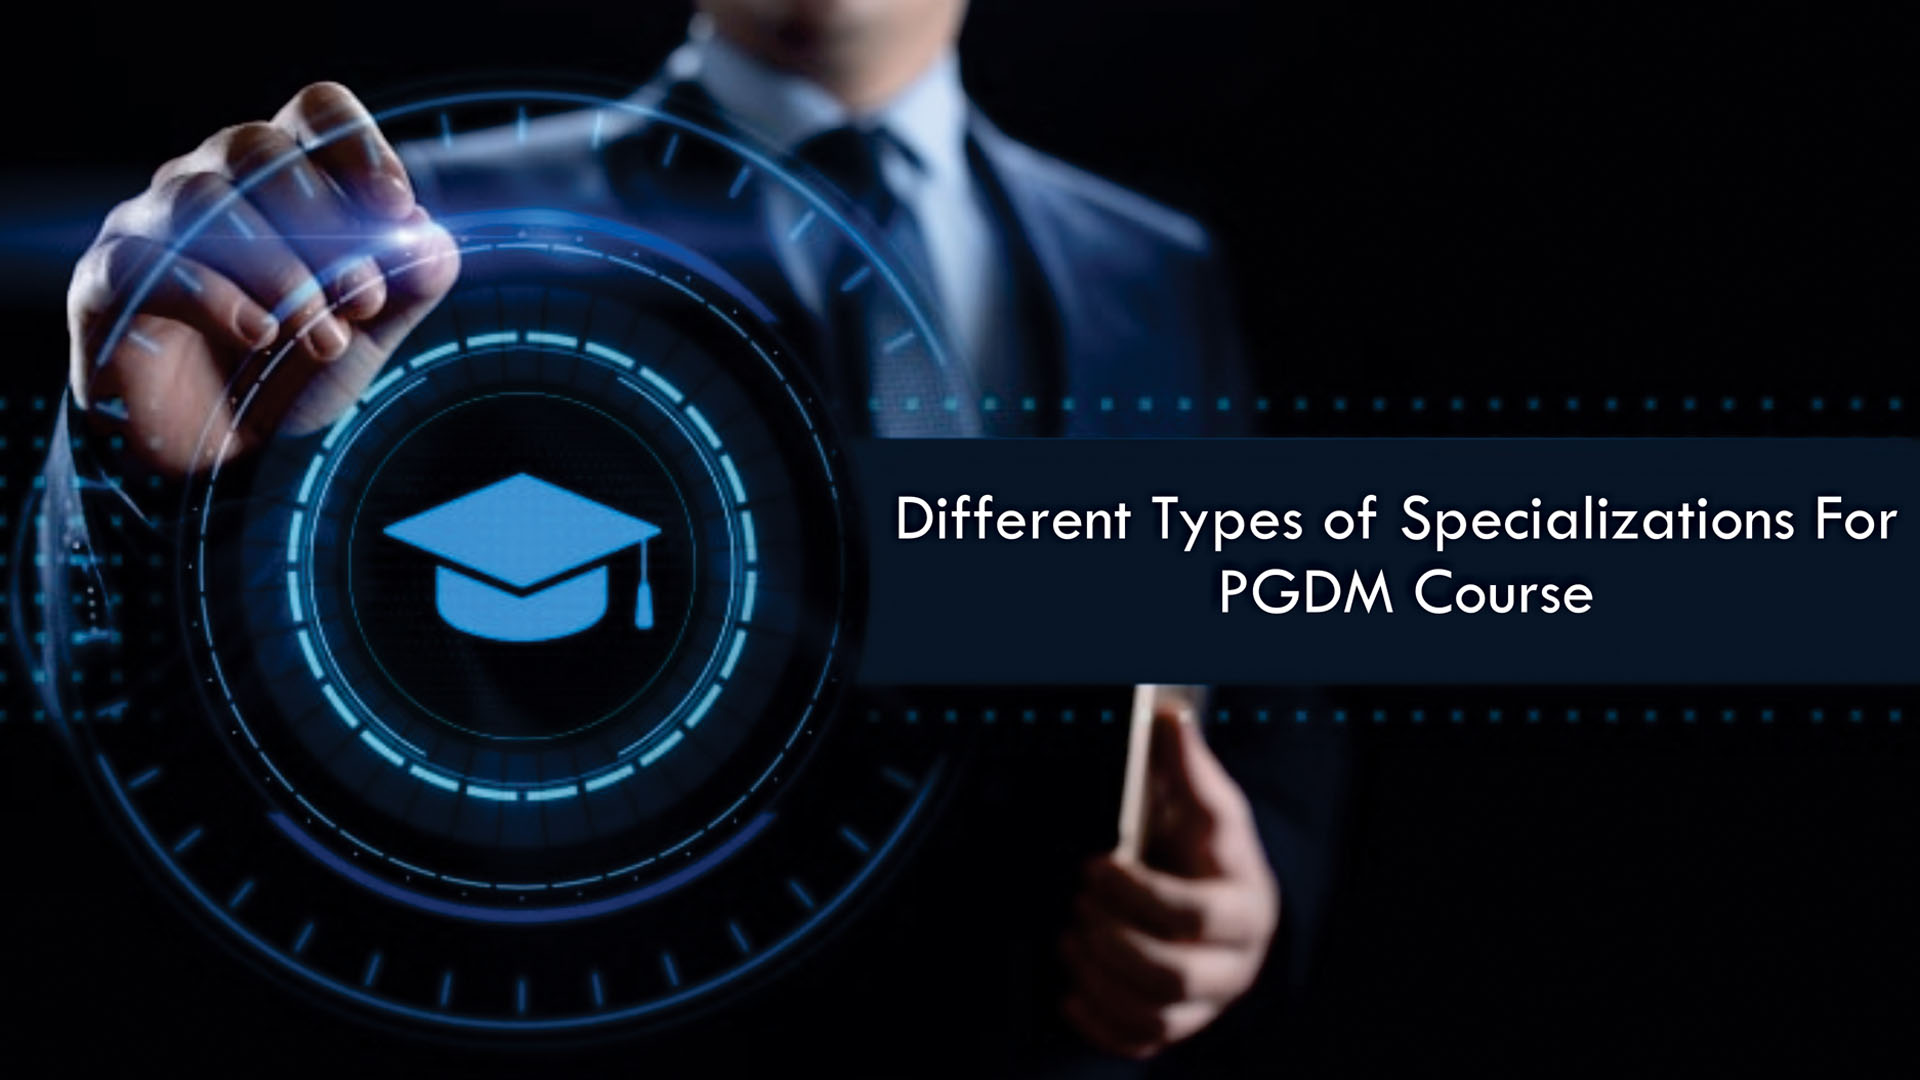 specializations for pgdm course